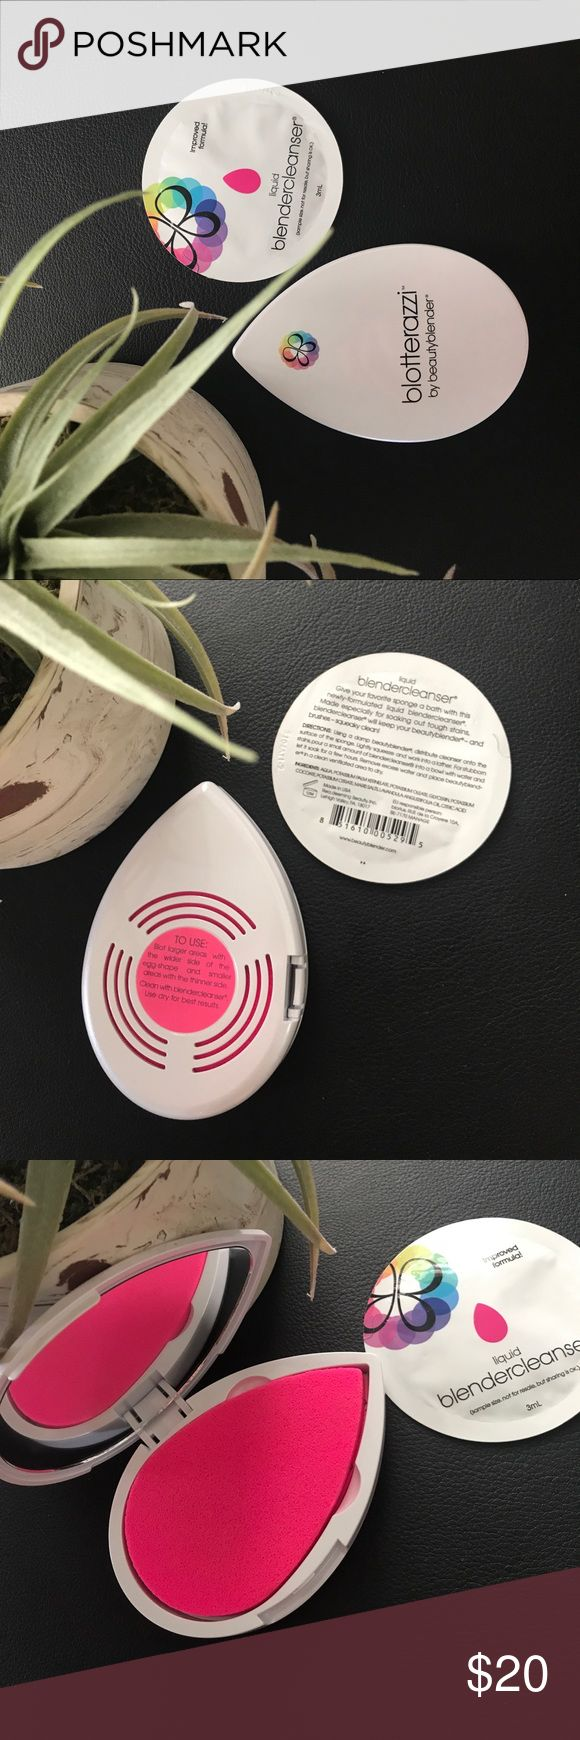 Beauty Blender Cleanser and Blotterazzi Bundle New and unused liquid beauty blender cleanser and the bloterazzi with a compact mirror. Beauty Blender Makeup